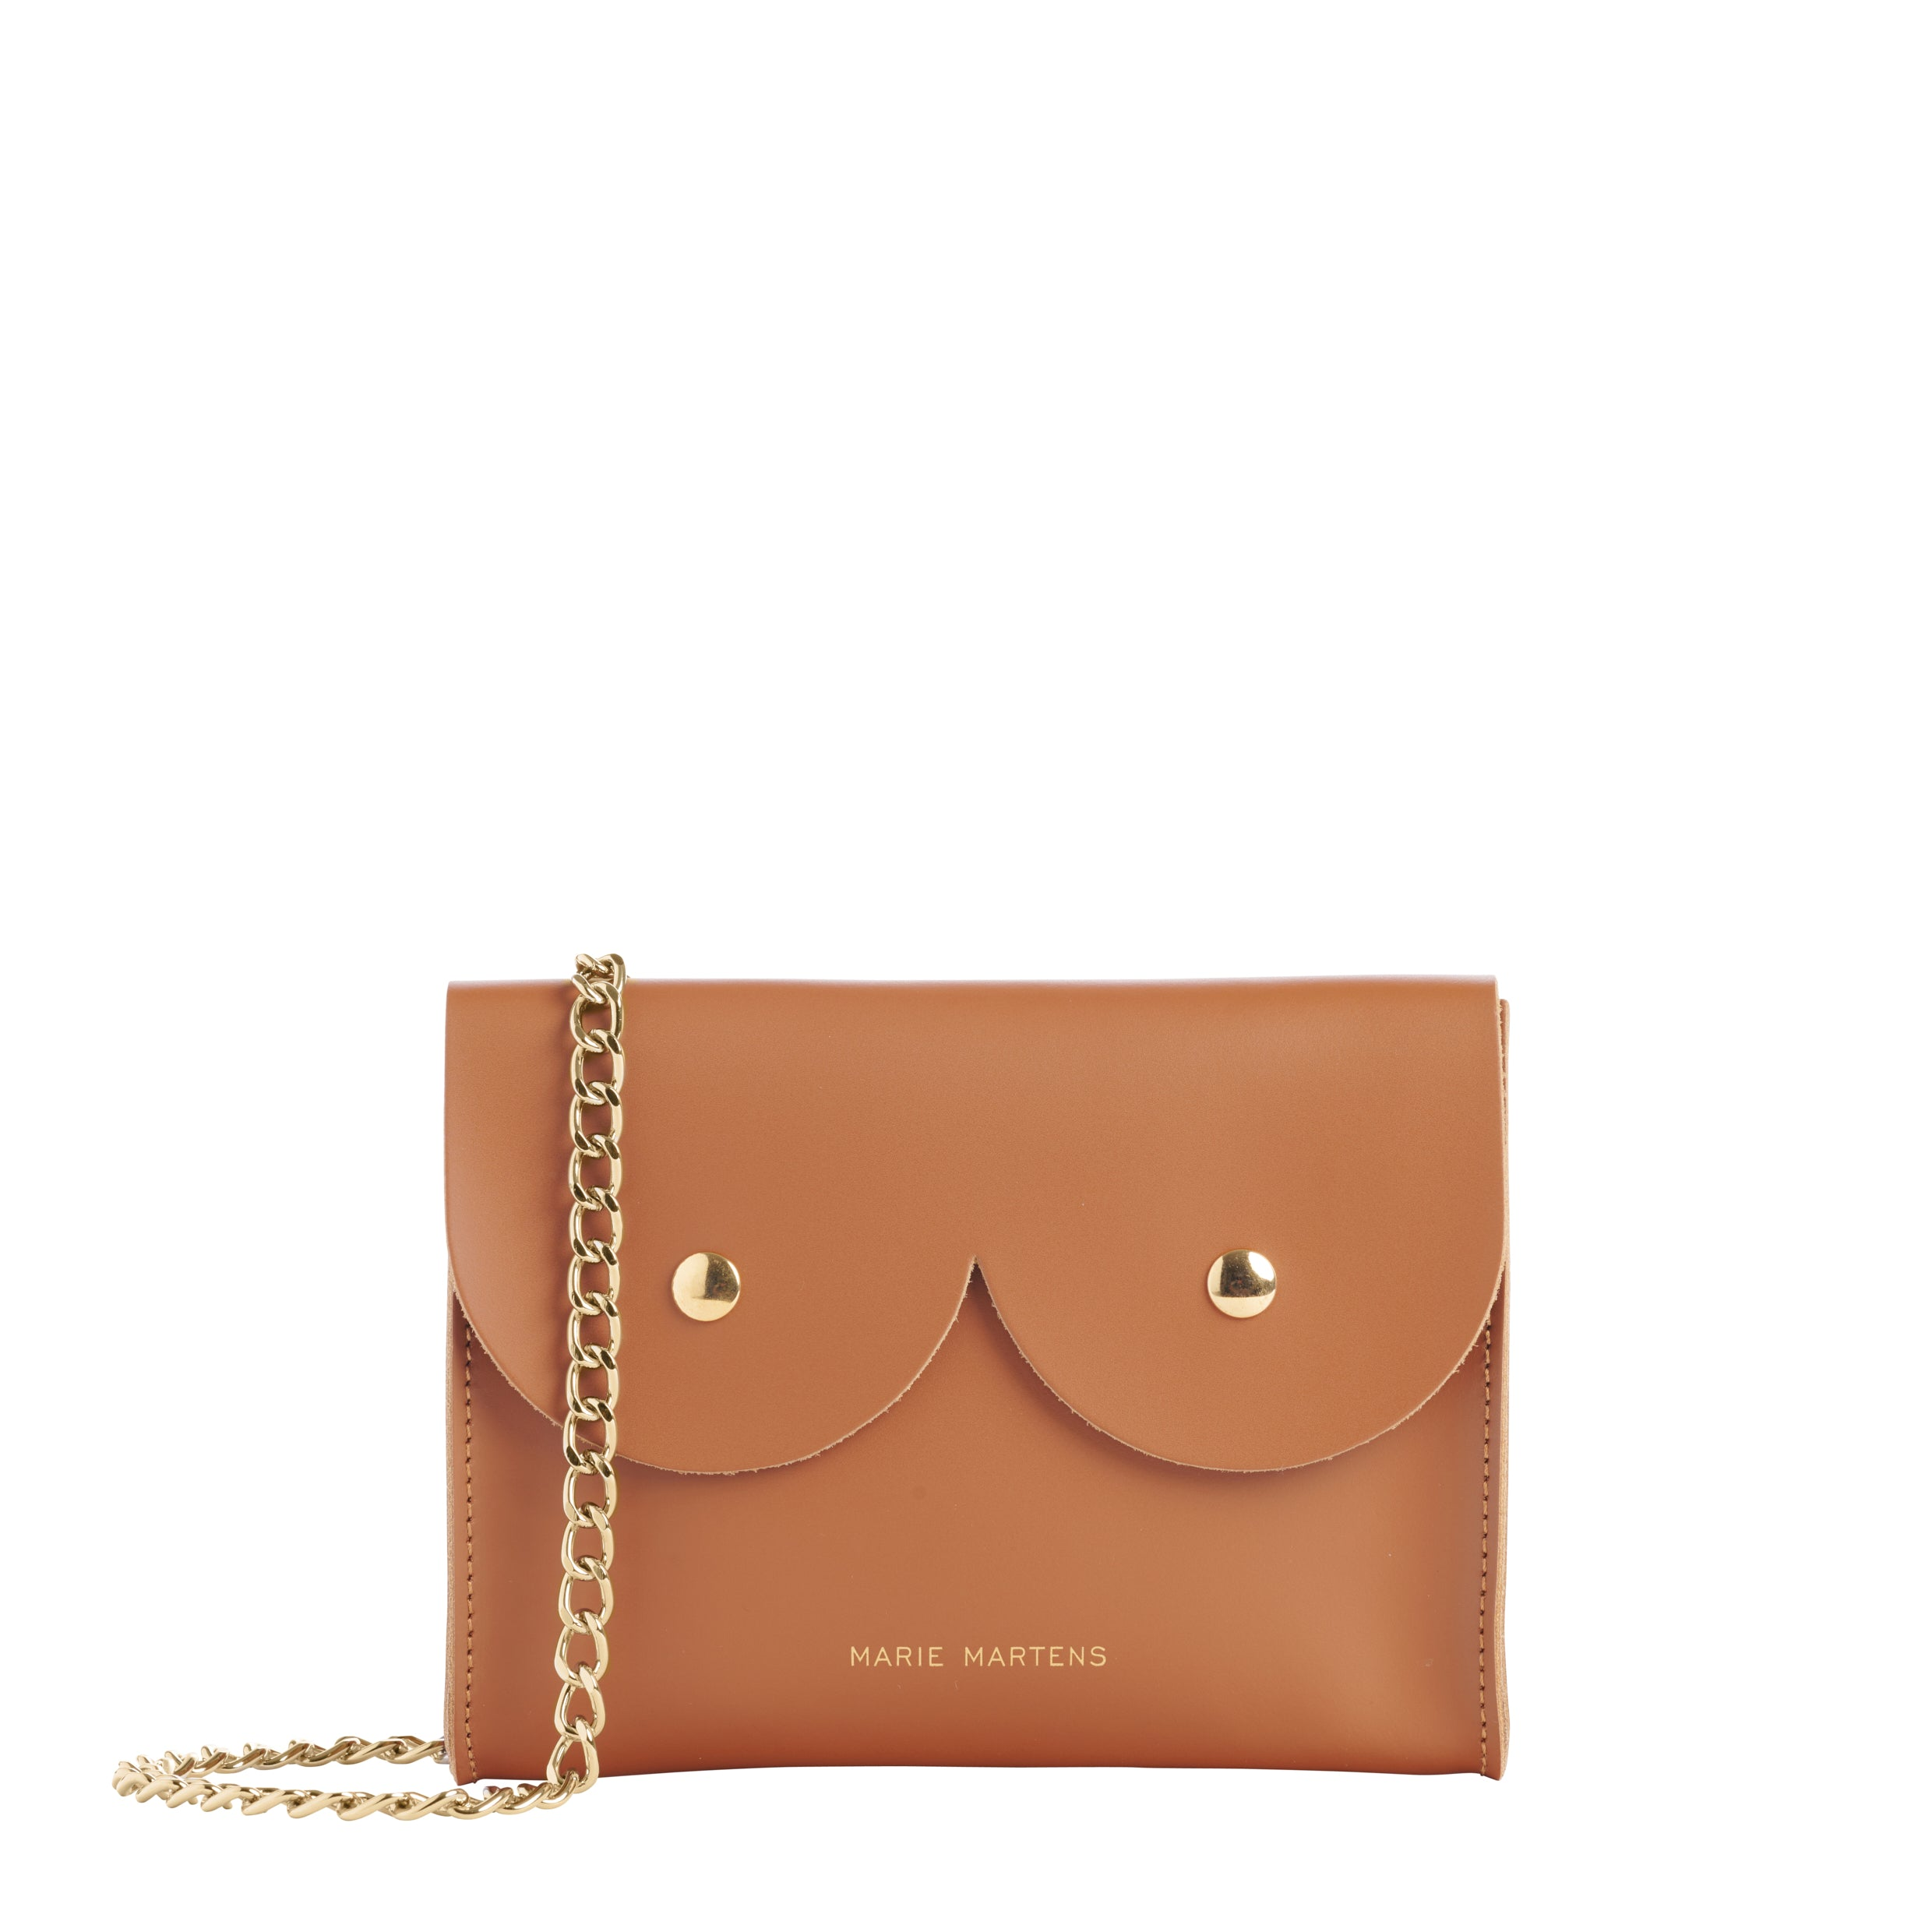 Marie Martens Mini Bag Titi Camel